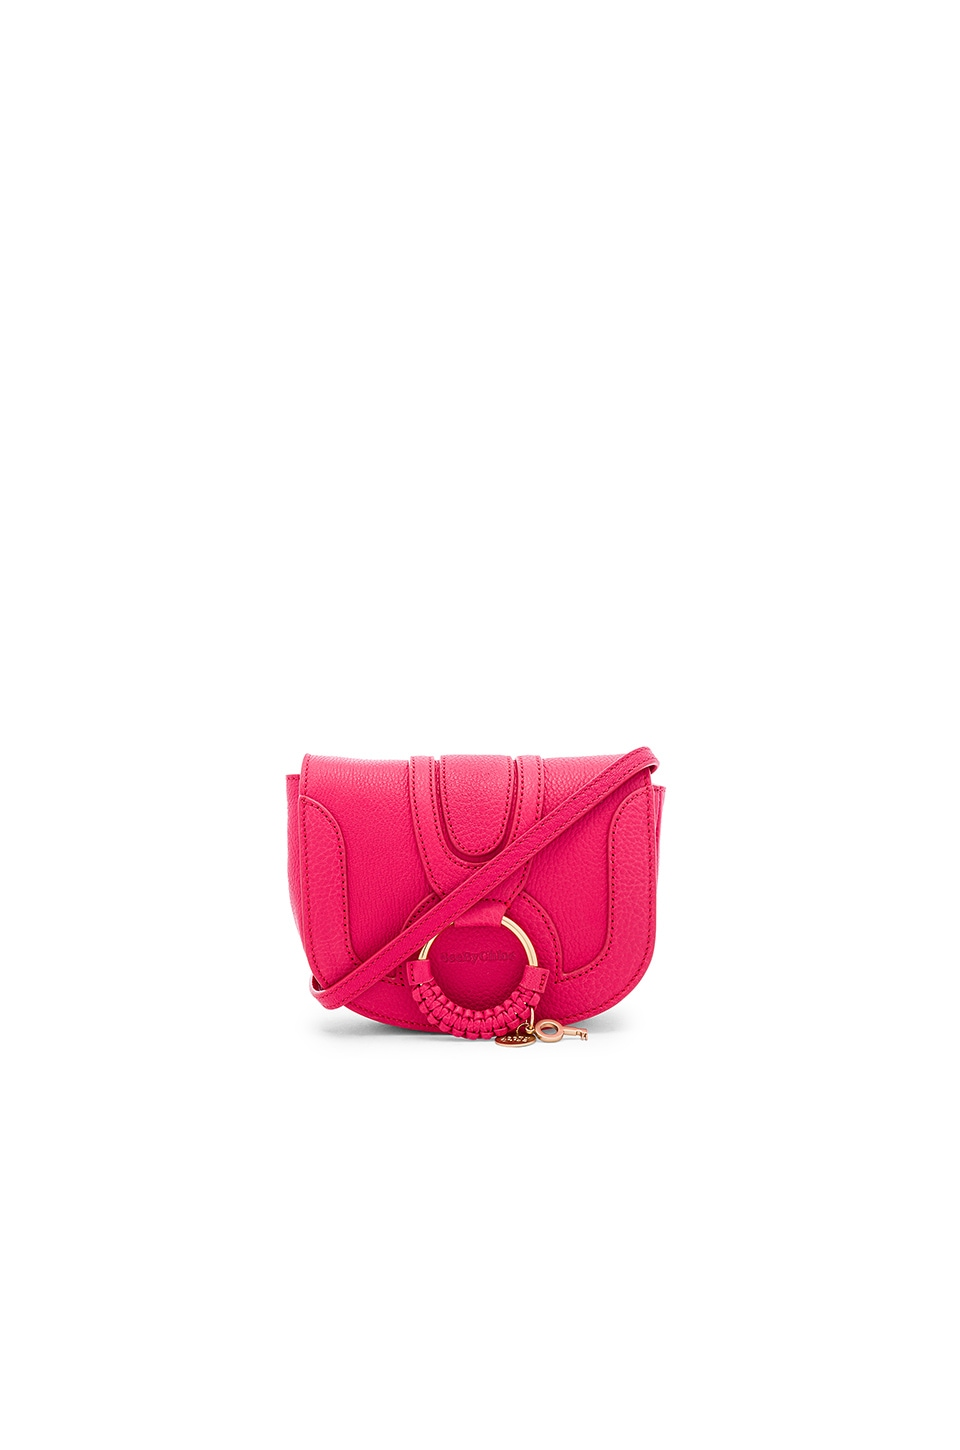 See By Chloe Hana Mini Crossbody in Ardent Pink